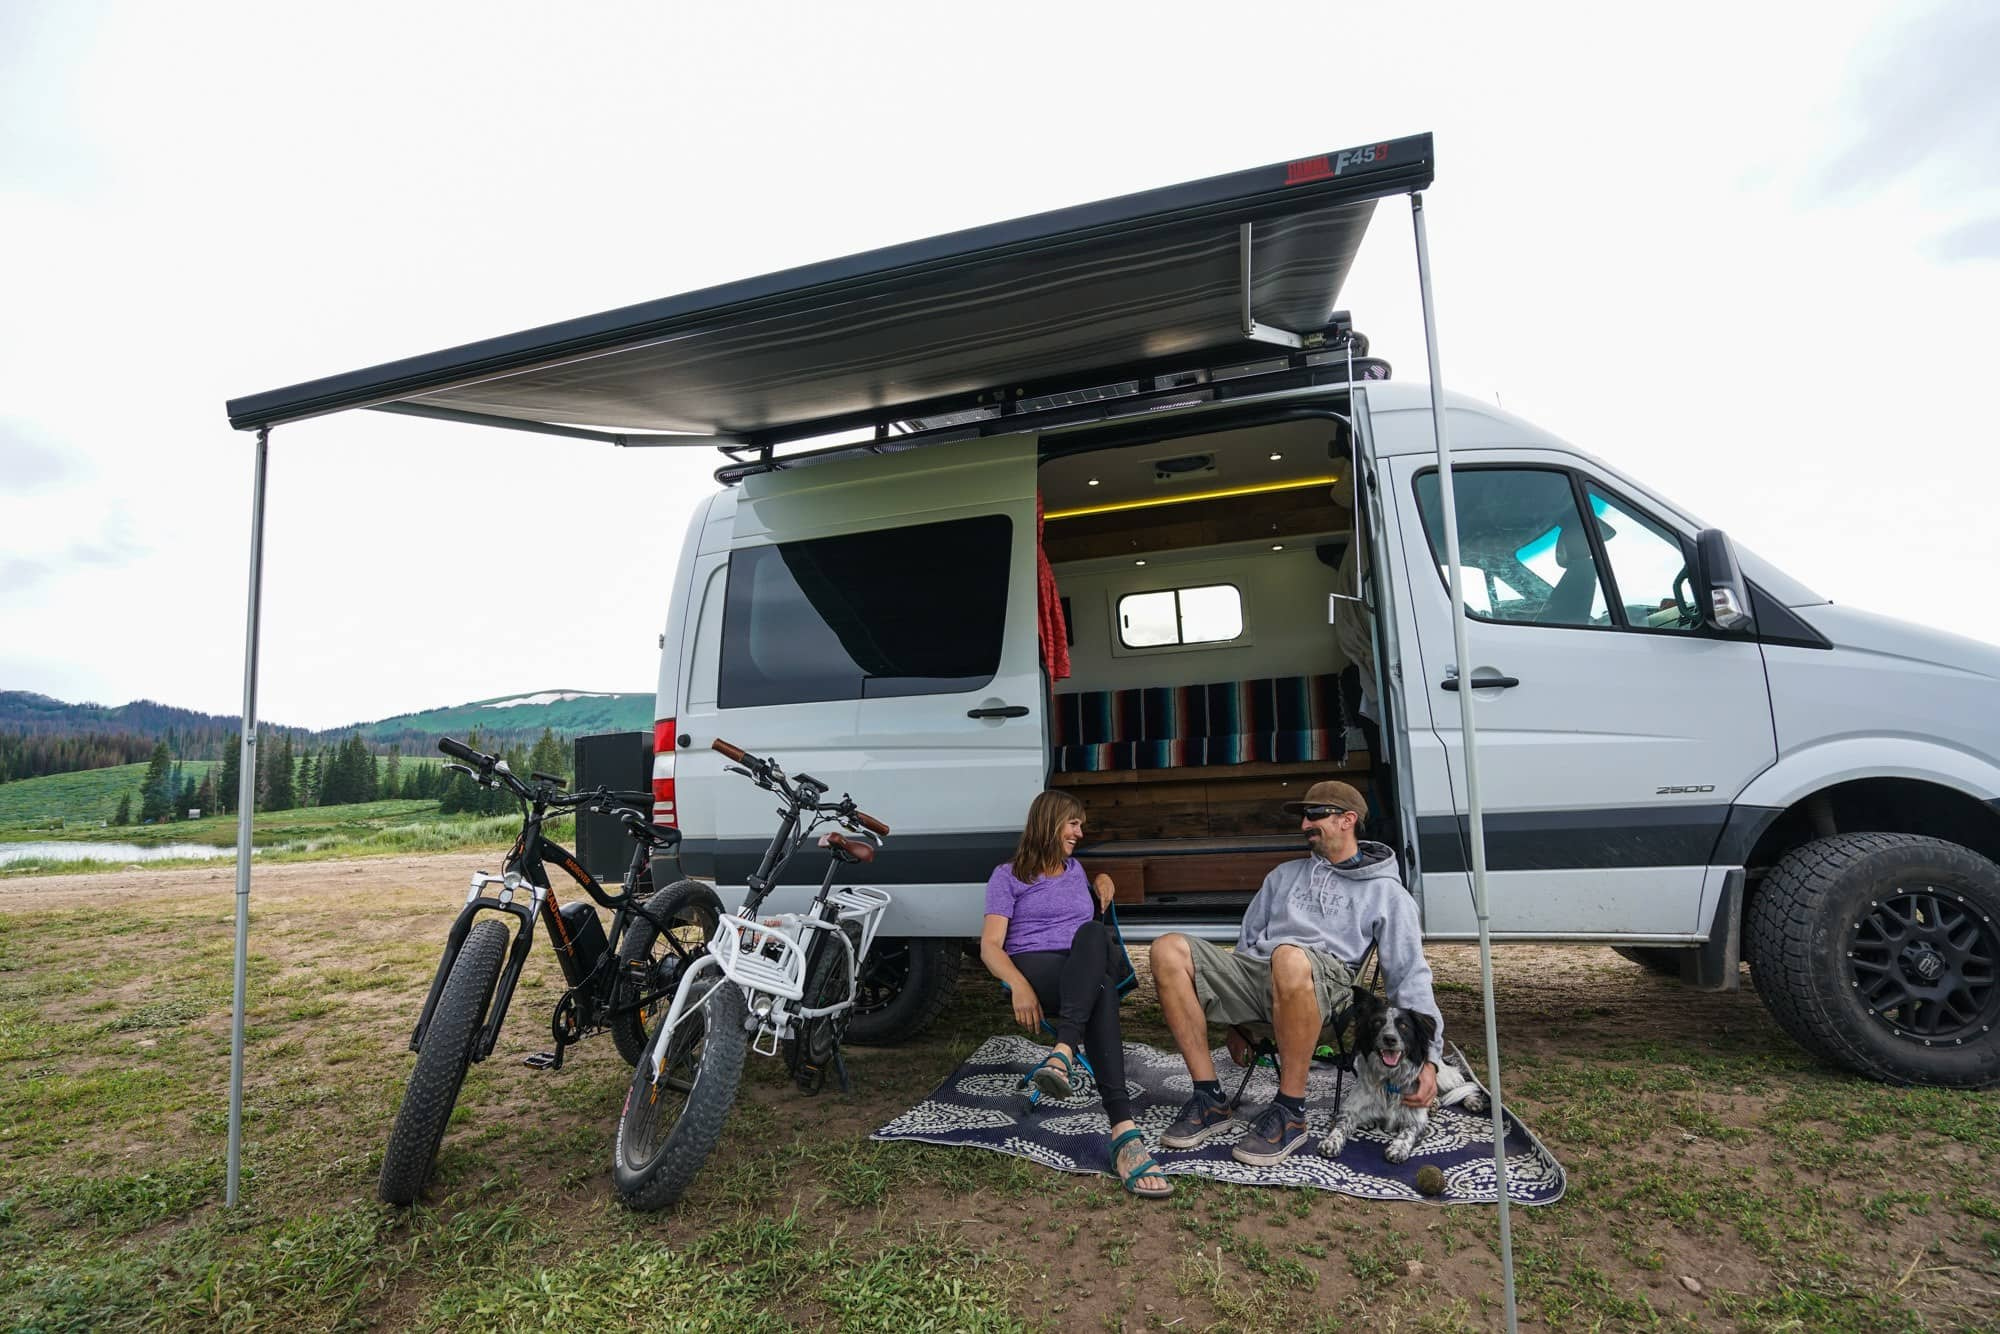 Think you're ready for full-time van-life? Preparing for #vanlife takes careful consideration. Check out our list of important questions to ask before giving up your home and making the transition to full-time van life.